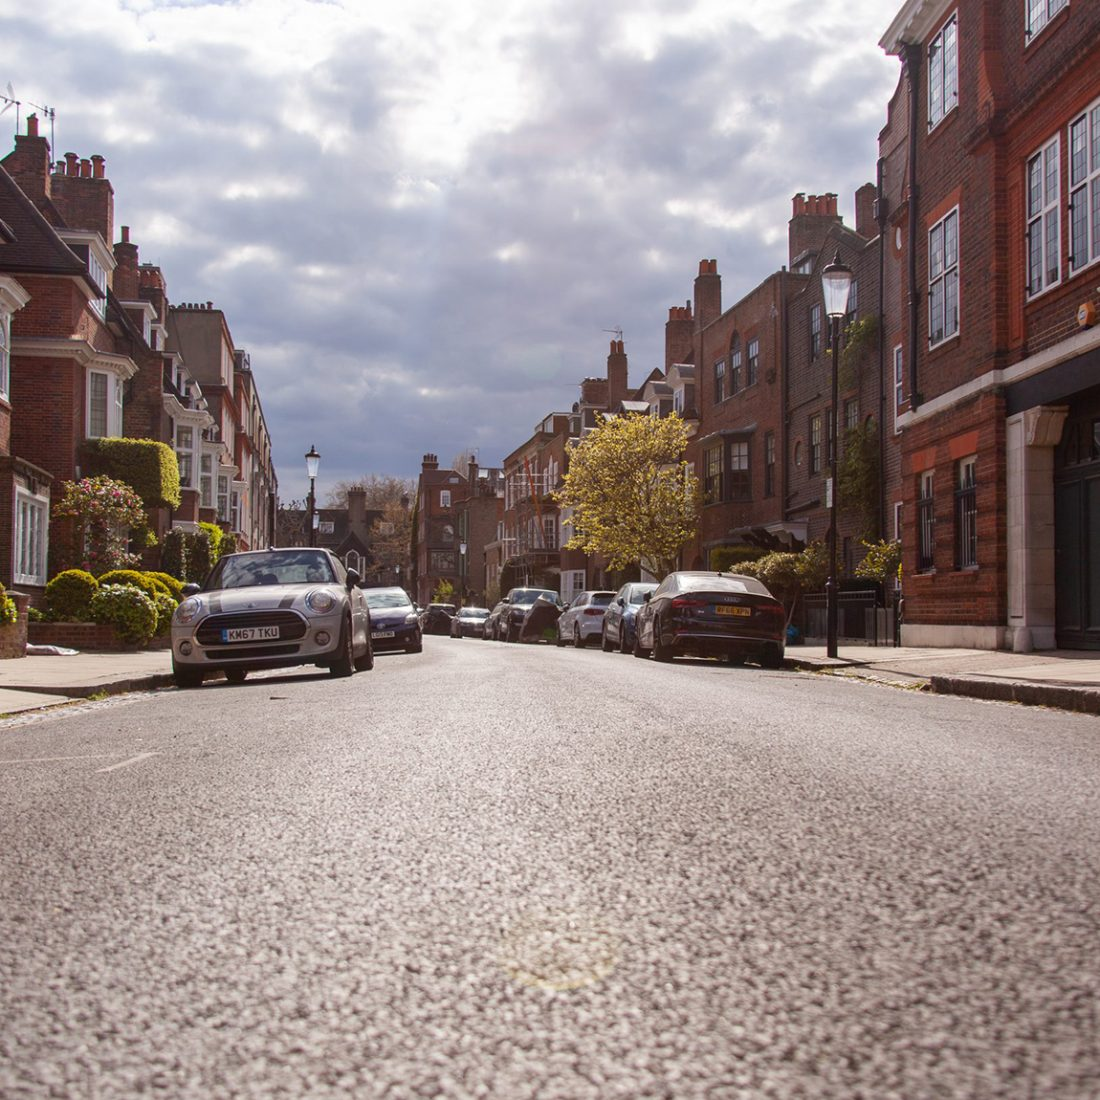 What to look out for when renting flats in London